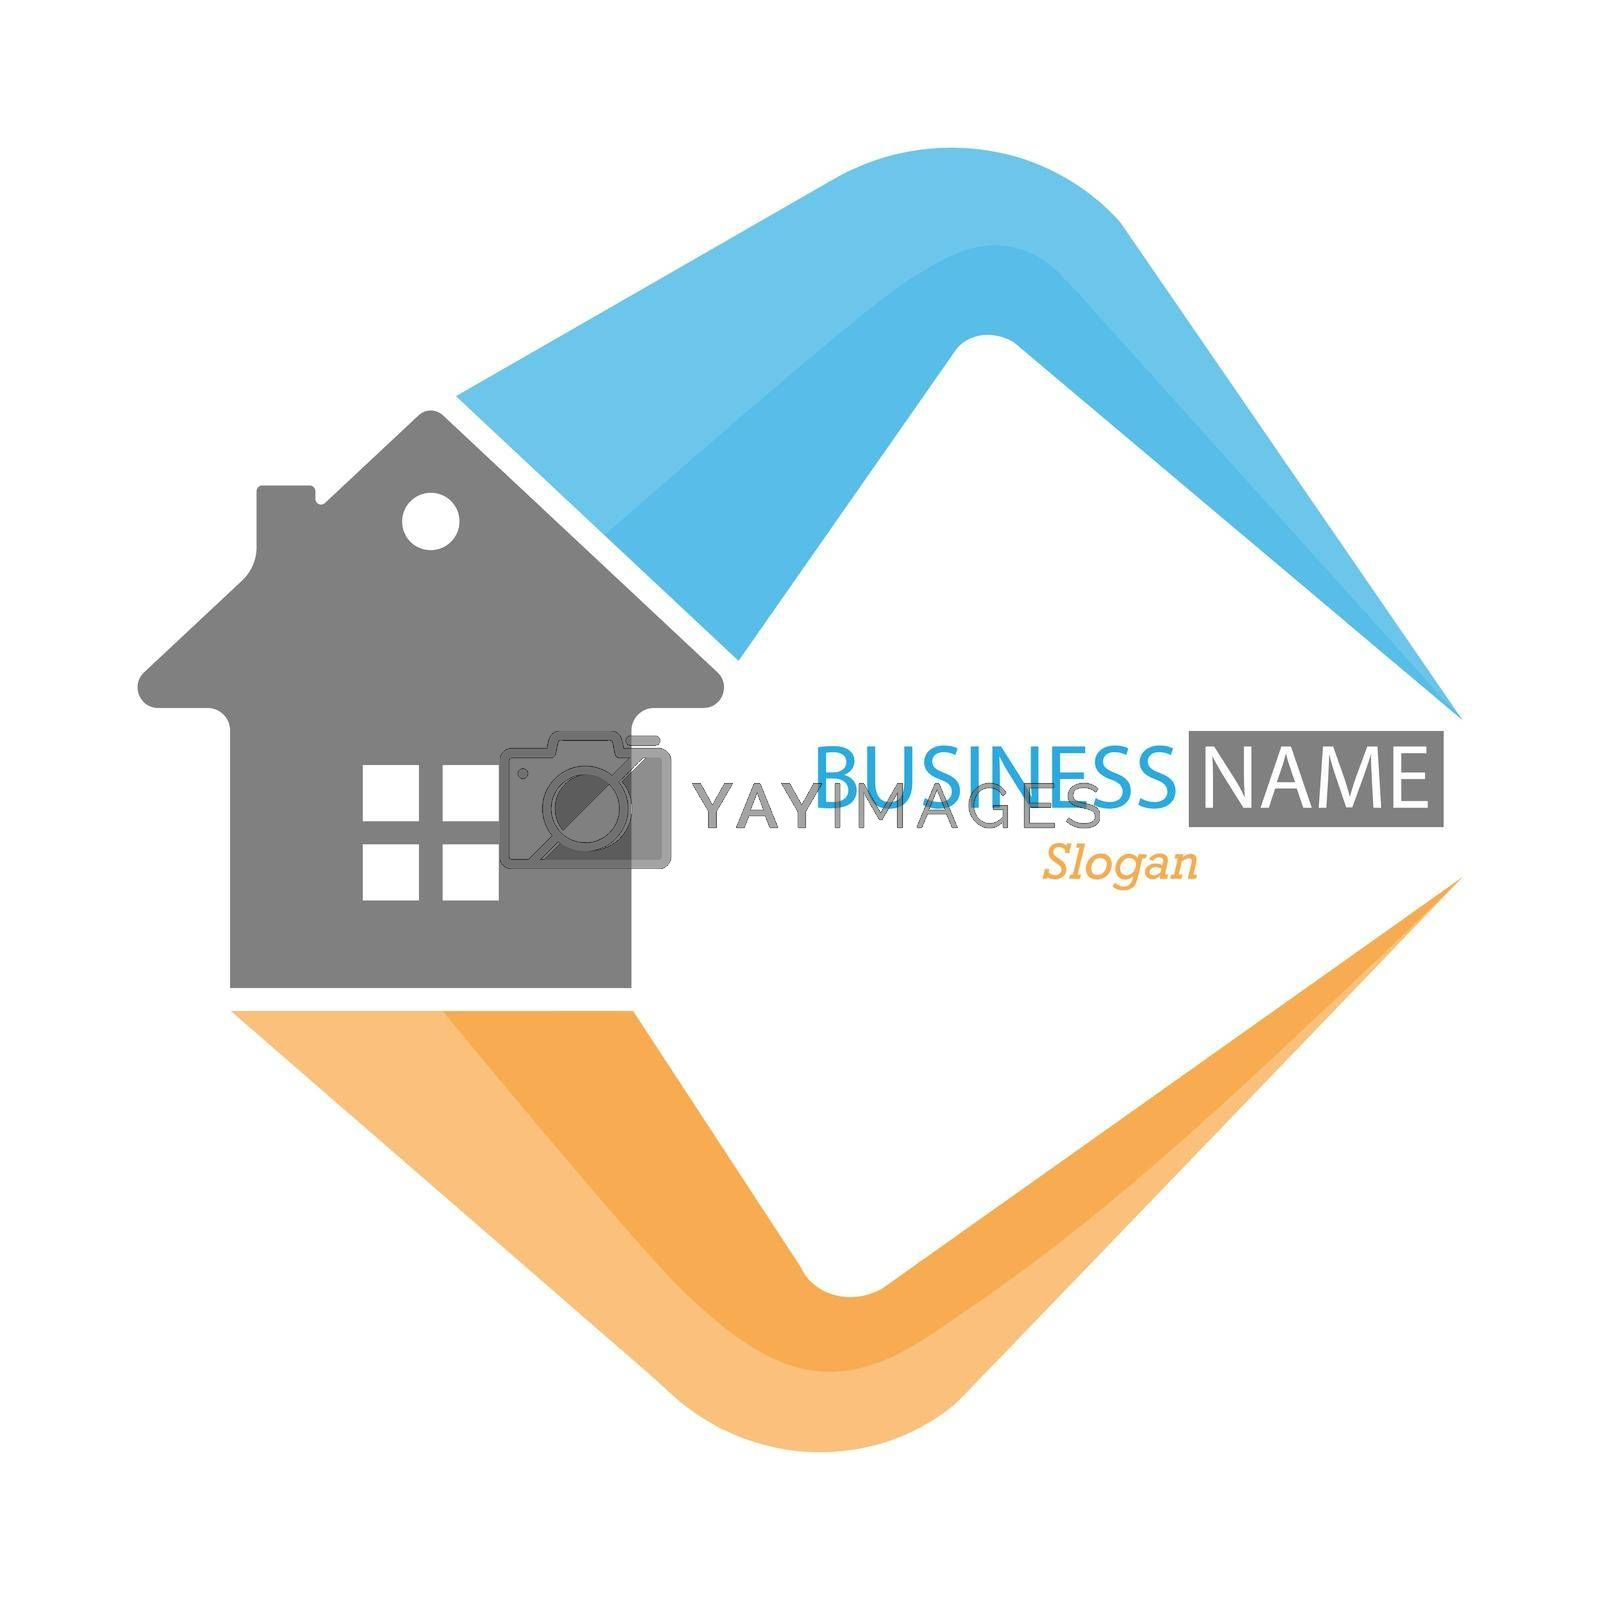 Royalty free image of Editable template for logo, brand, emblem or sticker. Brand of construction company, business of hiring, buying and selling home by Grommik